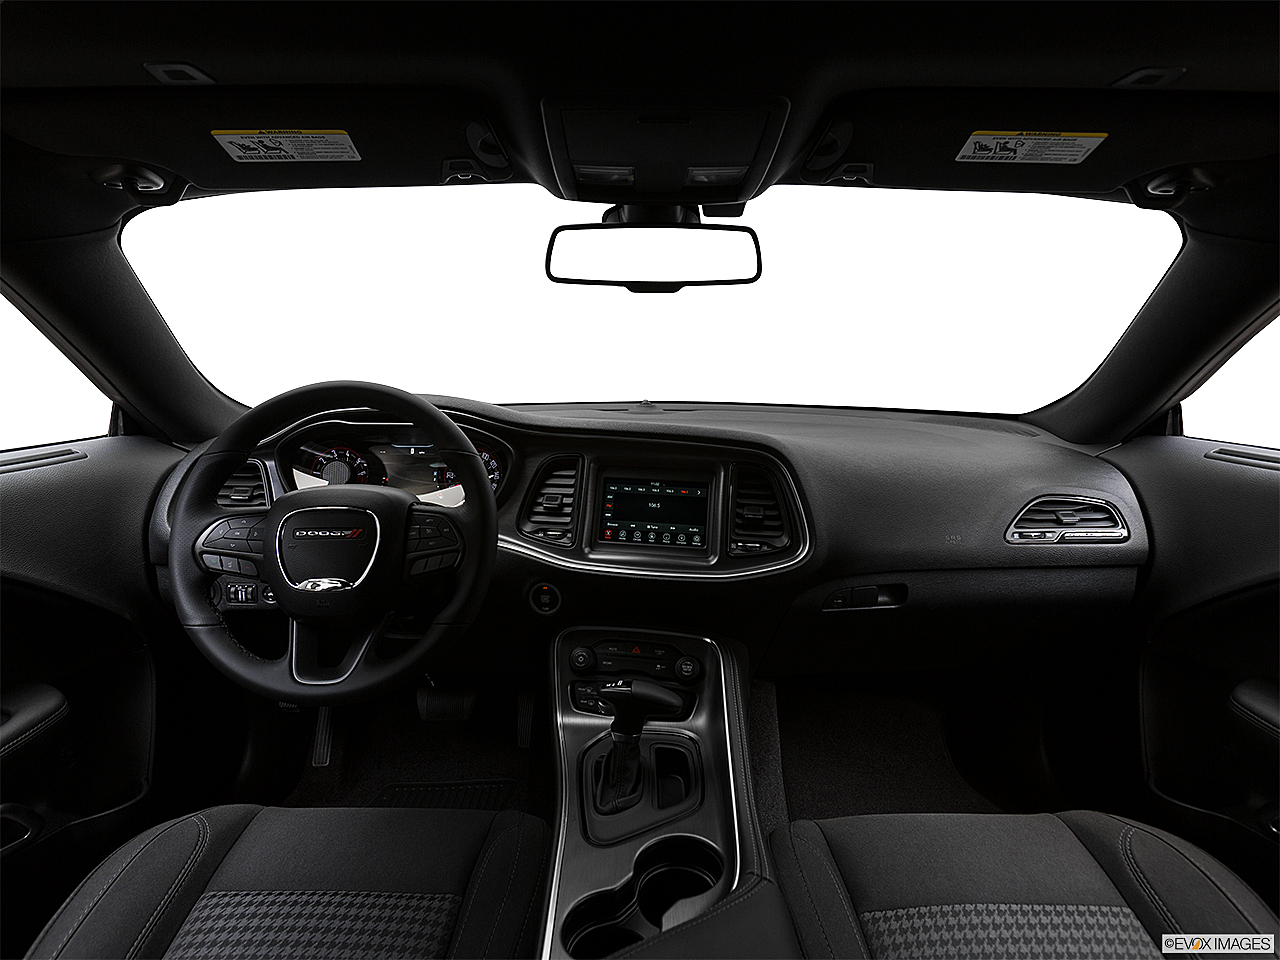 2018 Dodge Challenger SXT, centered wide dash shot